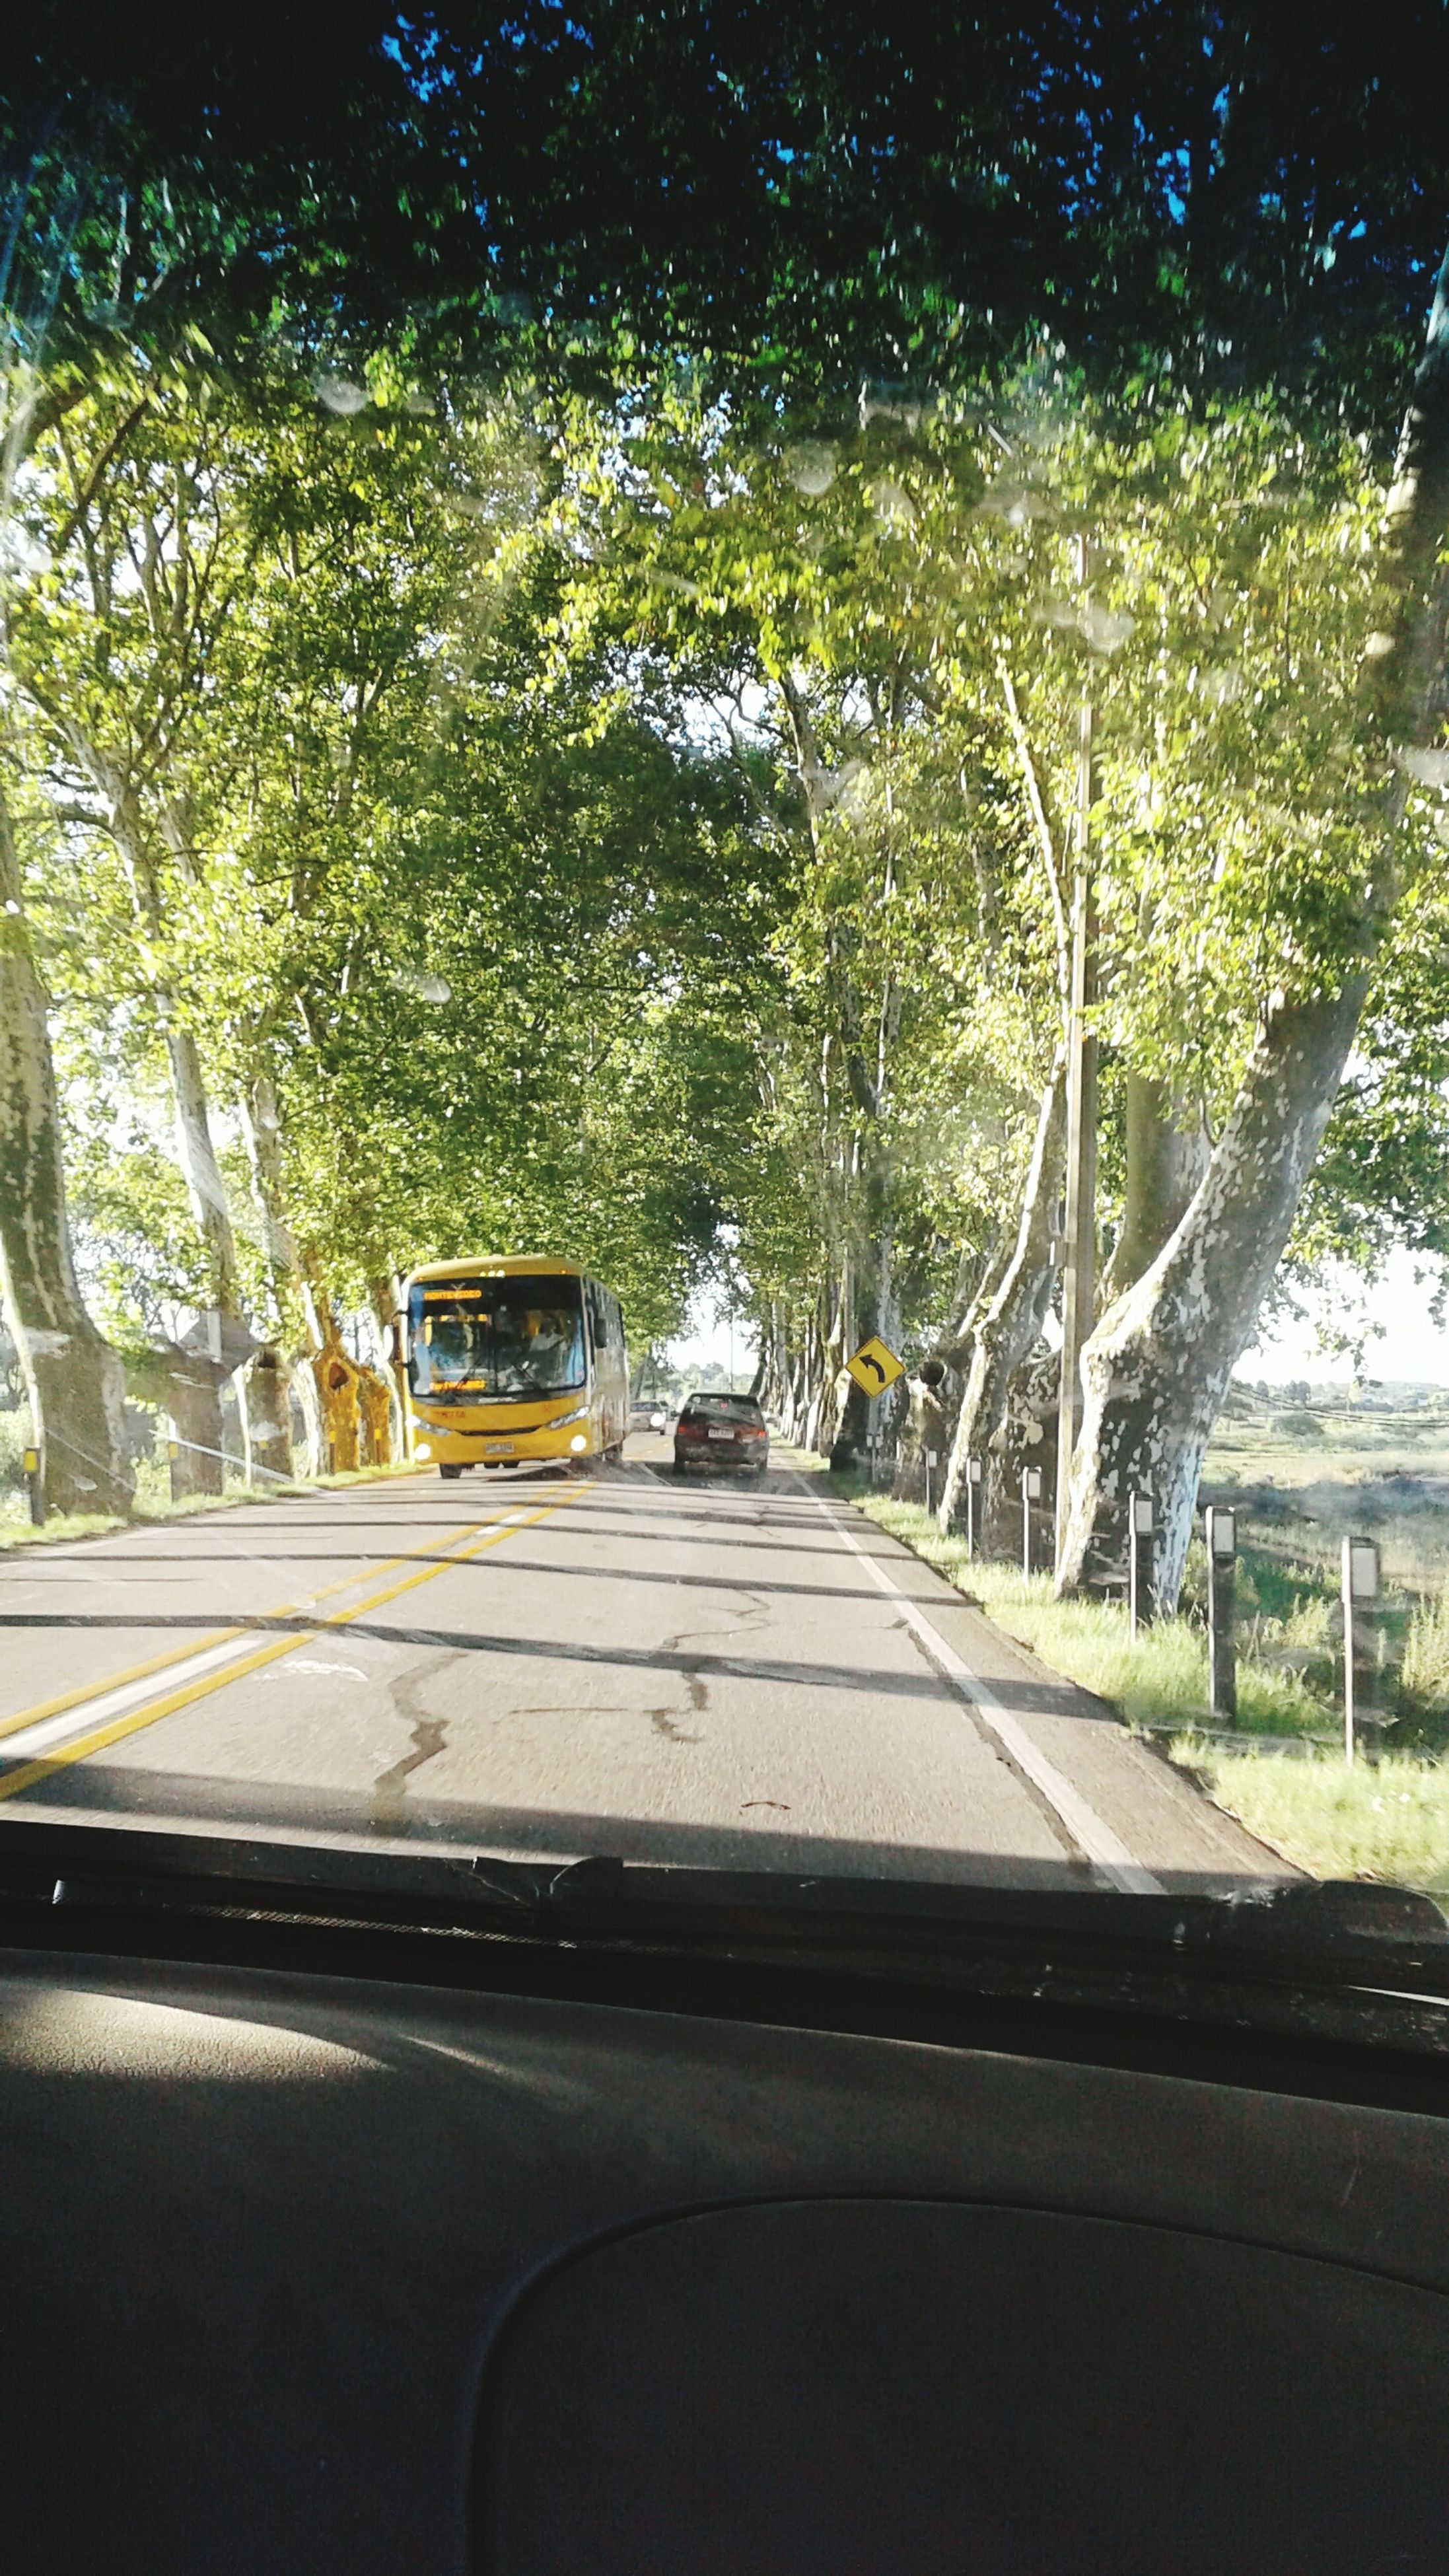 transportation, car, tree, windshield, land vehicle, car interior, vehicle interior, mode of transport, travel, no people, road, car point of view, the way forward, day, windscreen, dashboard, growth, outdoors, nature